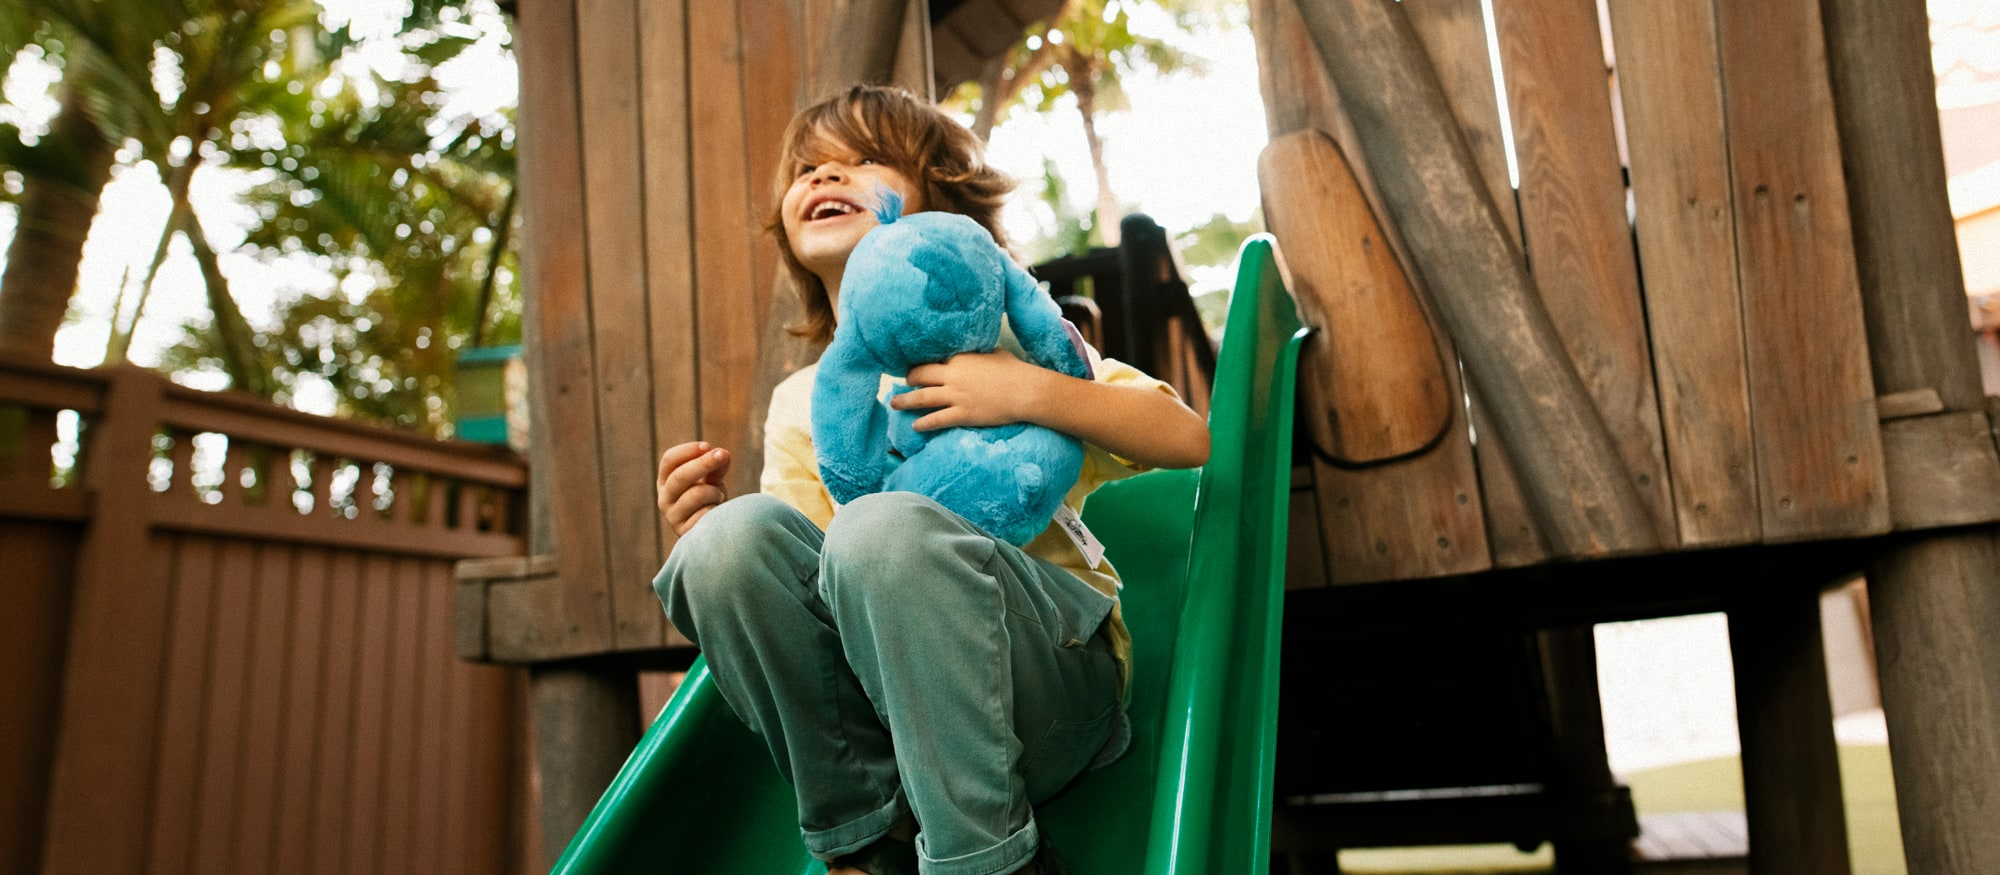 A young boy goes down a slide holding a Stitch plush